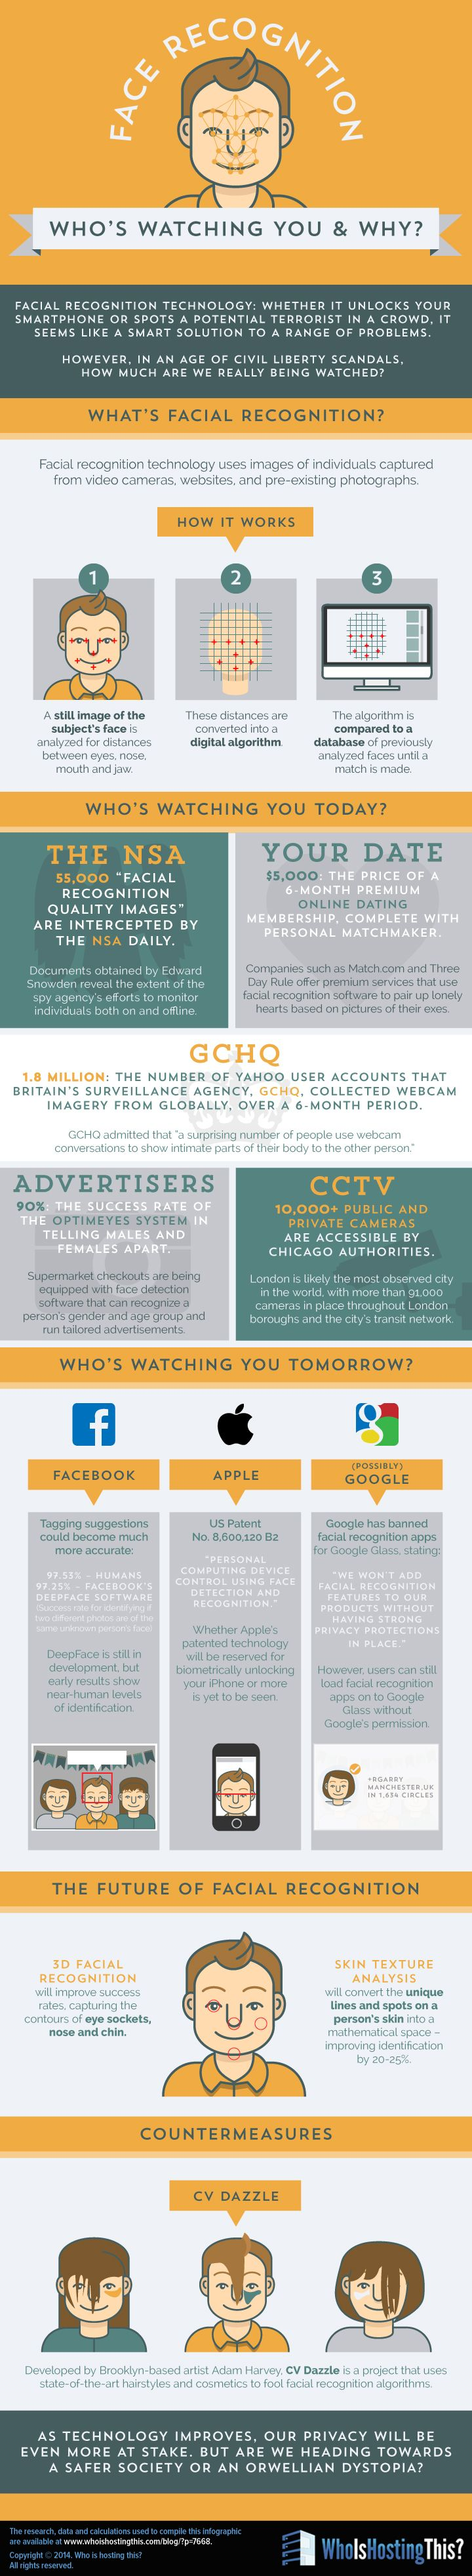 Big Brother Watchs You: Who is Whatching you & Why? #infografia #infographic Source: WhoIsHostingThis.com